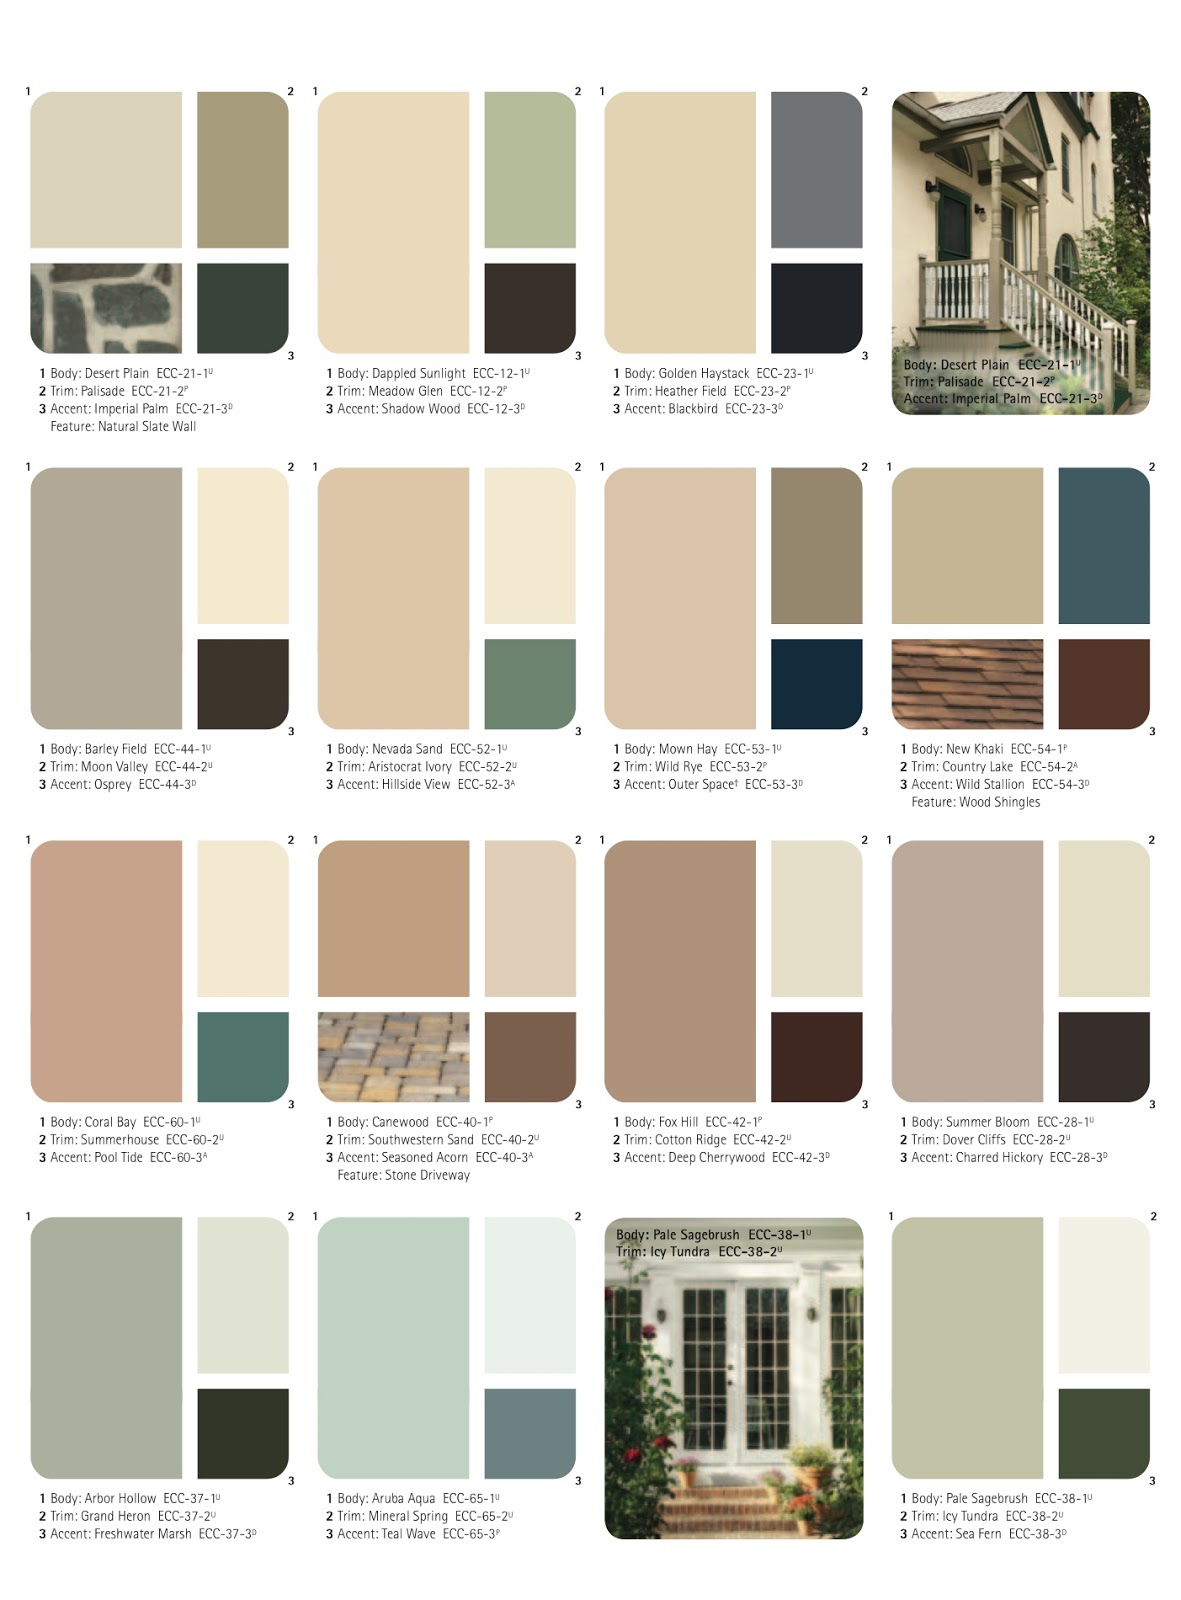 Home color schemes what to wear with khaki pants - Exterior house paint colors 2014 ...